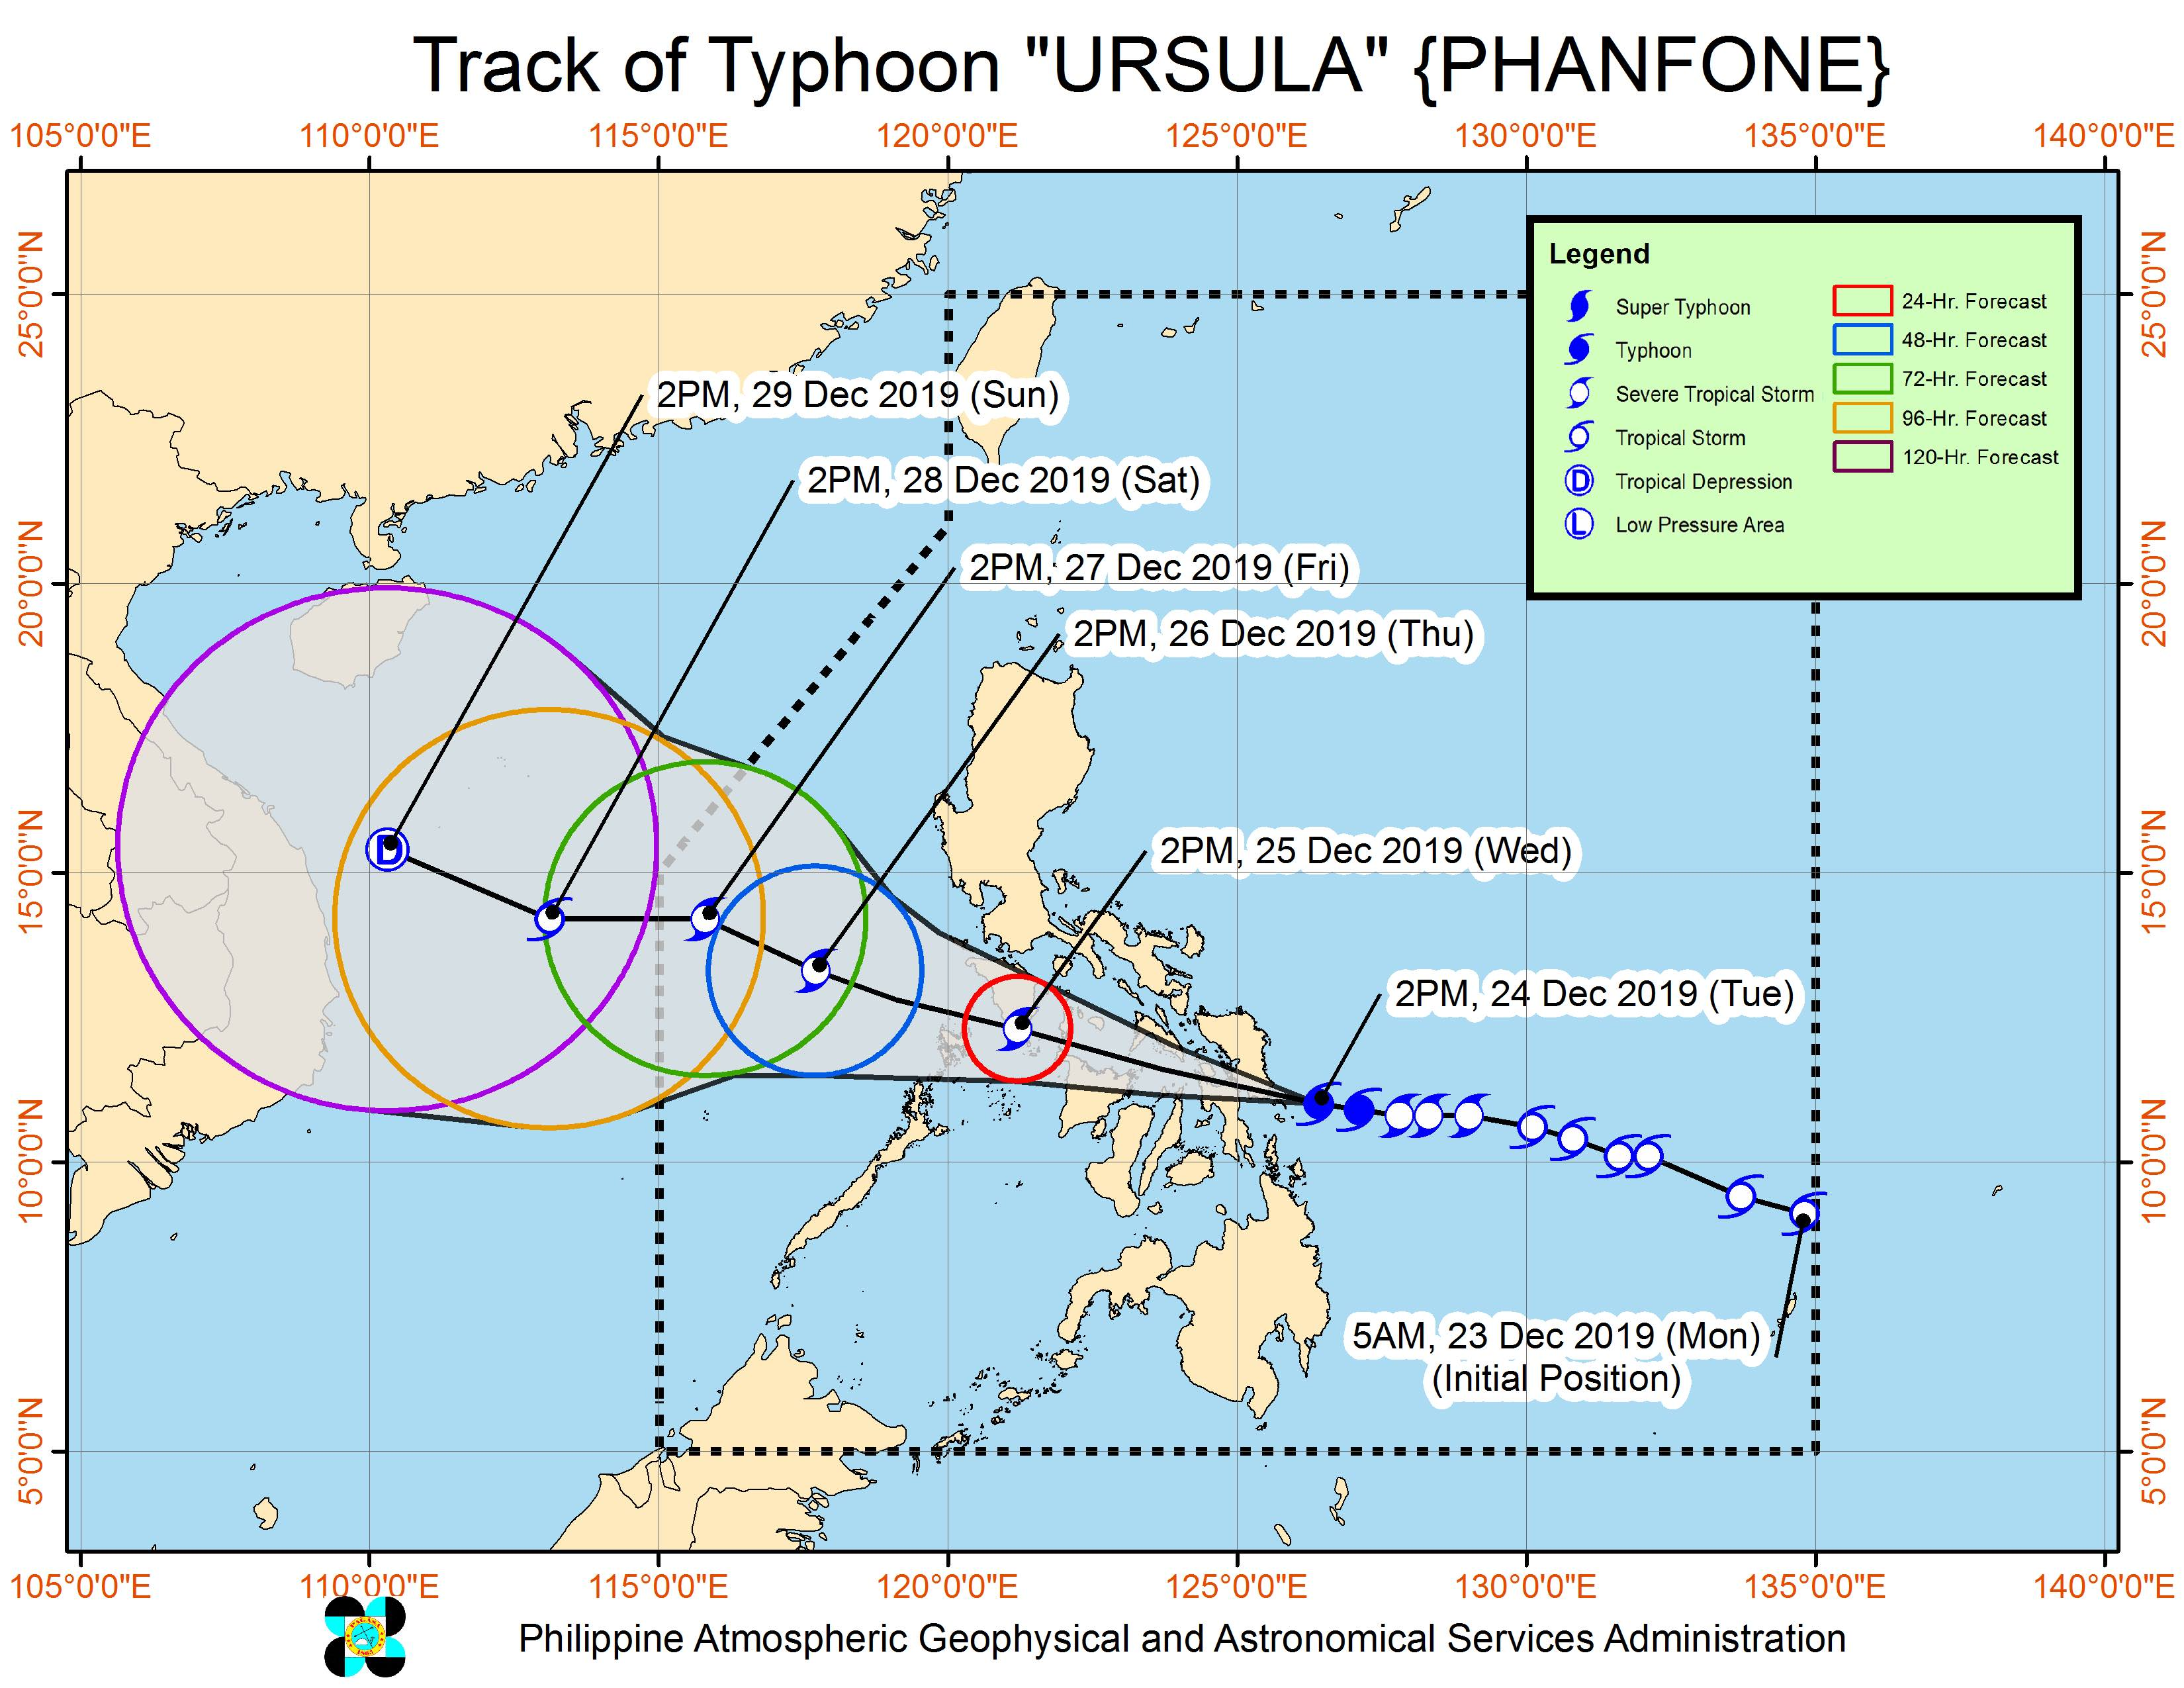 Forecast track of Typhoon Ursula (Phanfone) as of December 24, 2019, 5 pm. Image from PAGASA